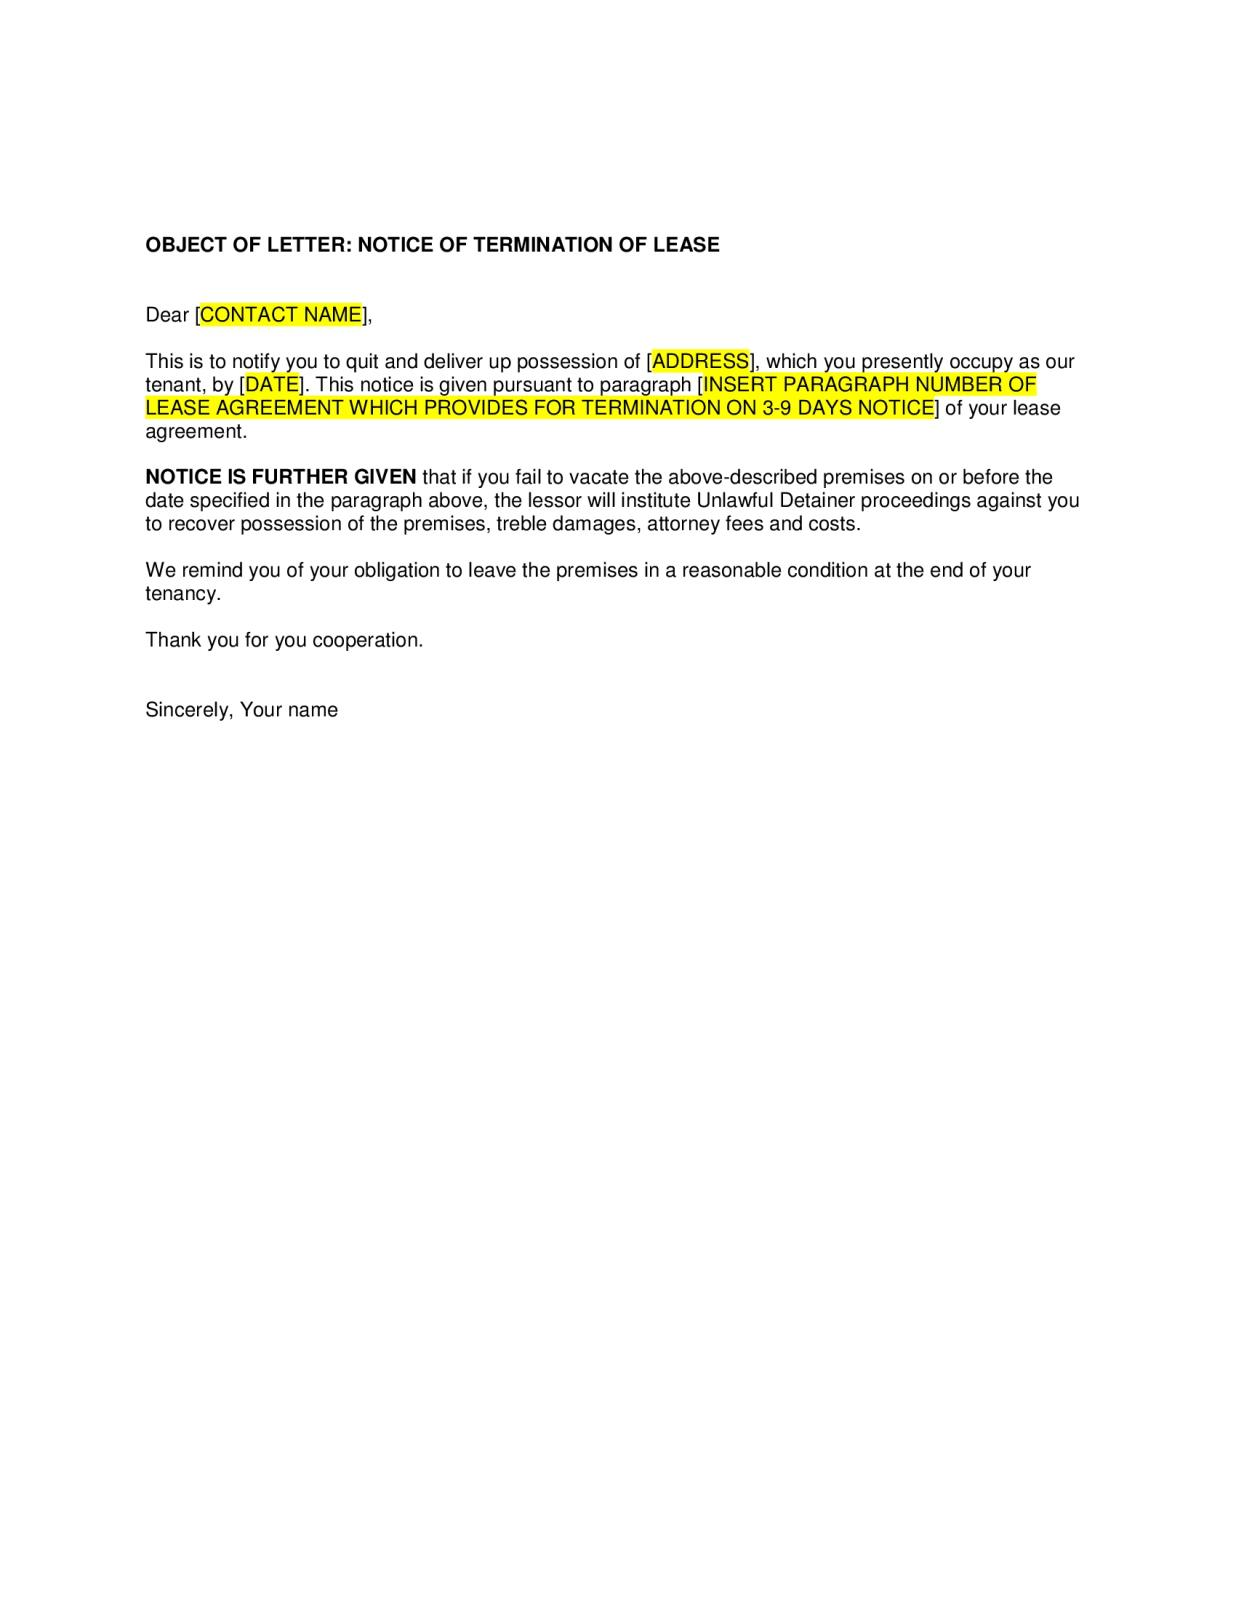 Tenant To Landlord Lease Termination Letter from blanker.org